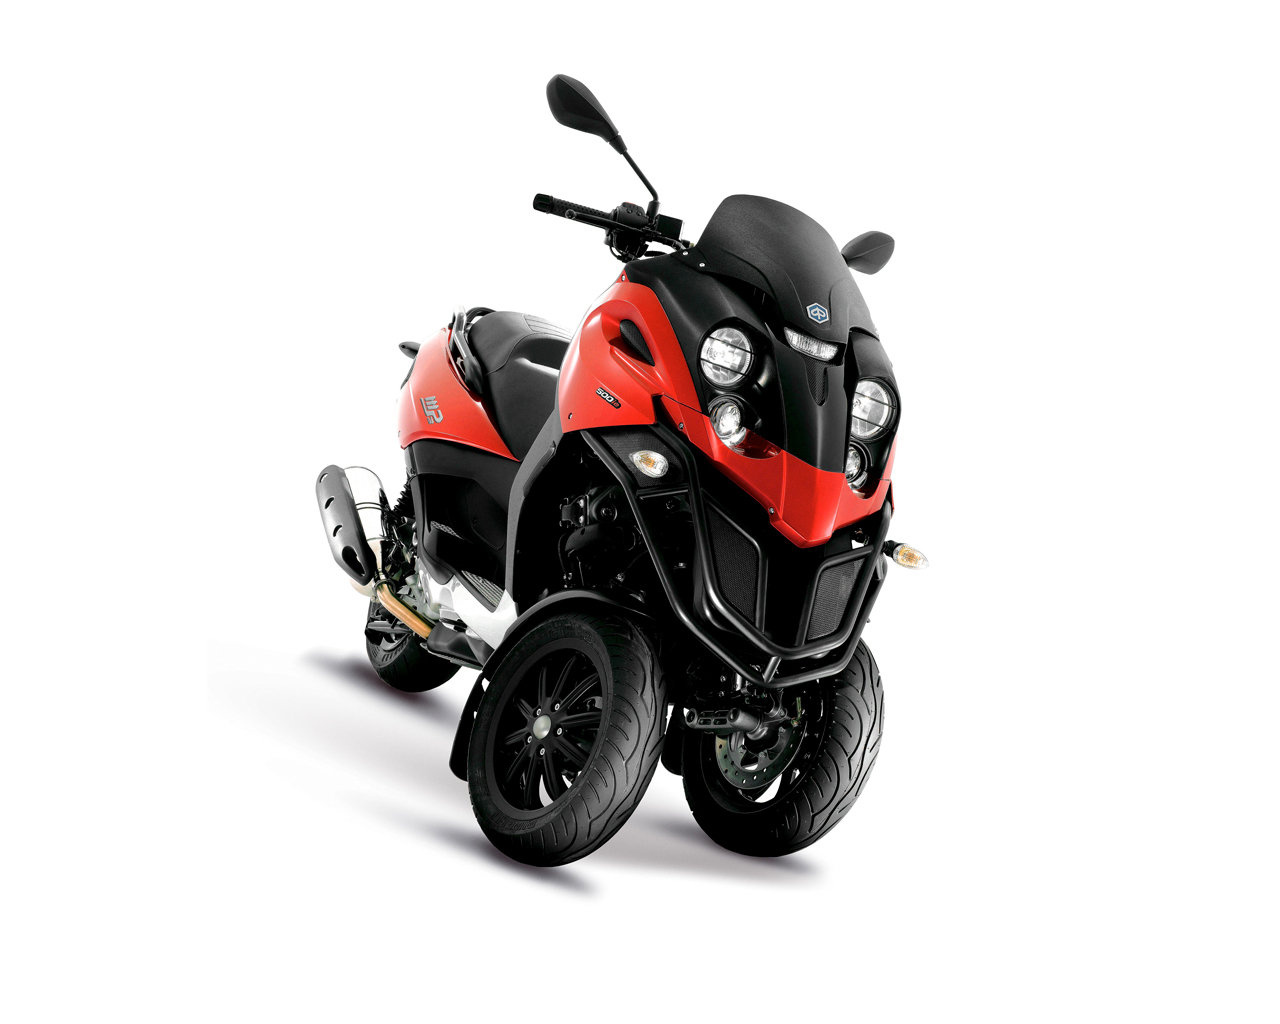 2012 piaggio mp3 500 picture 444021 motorcycle review. Black Bedroom Furniture Sets. Home Design Ideas